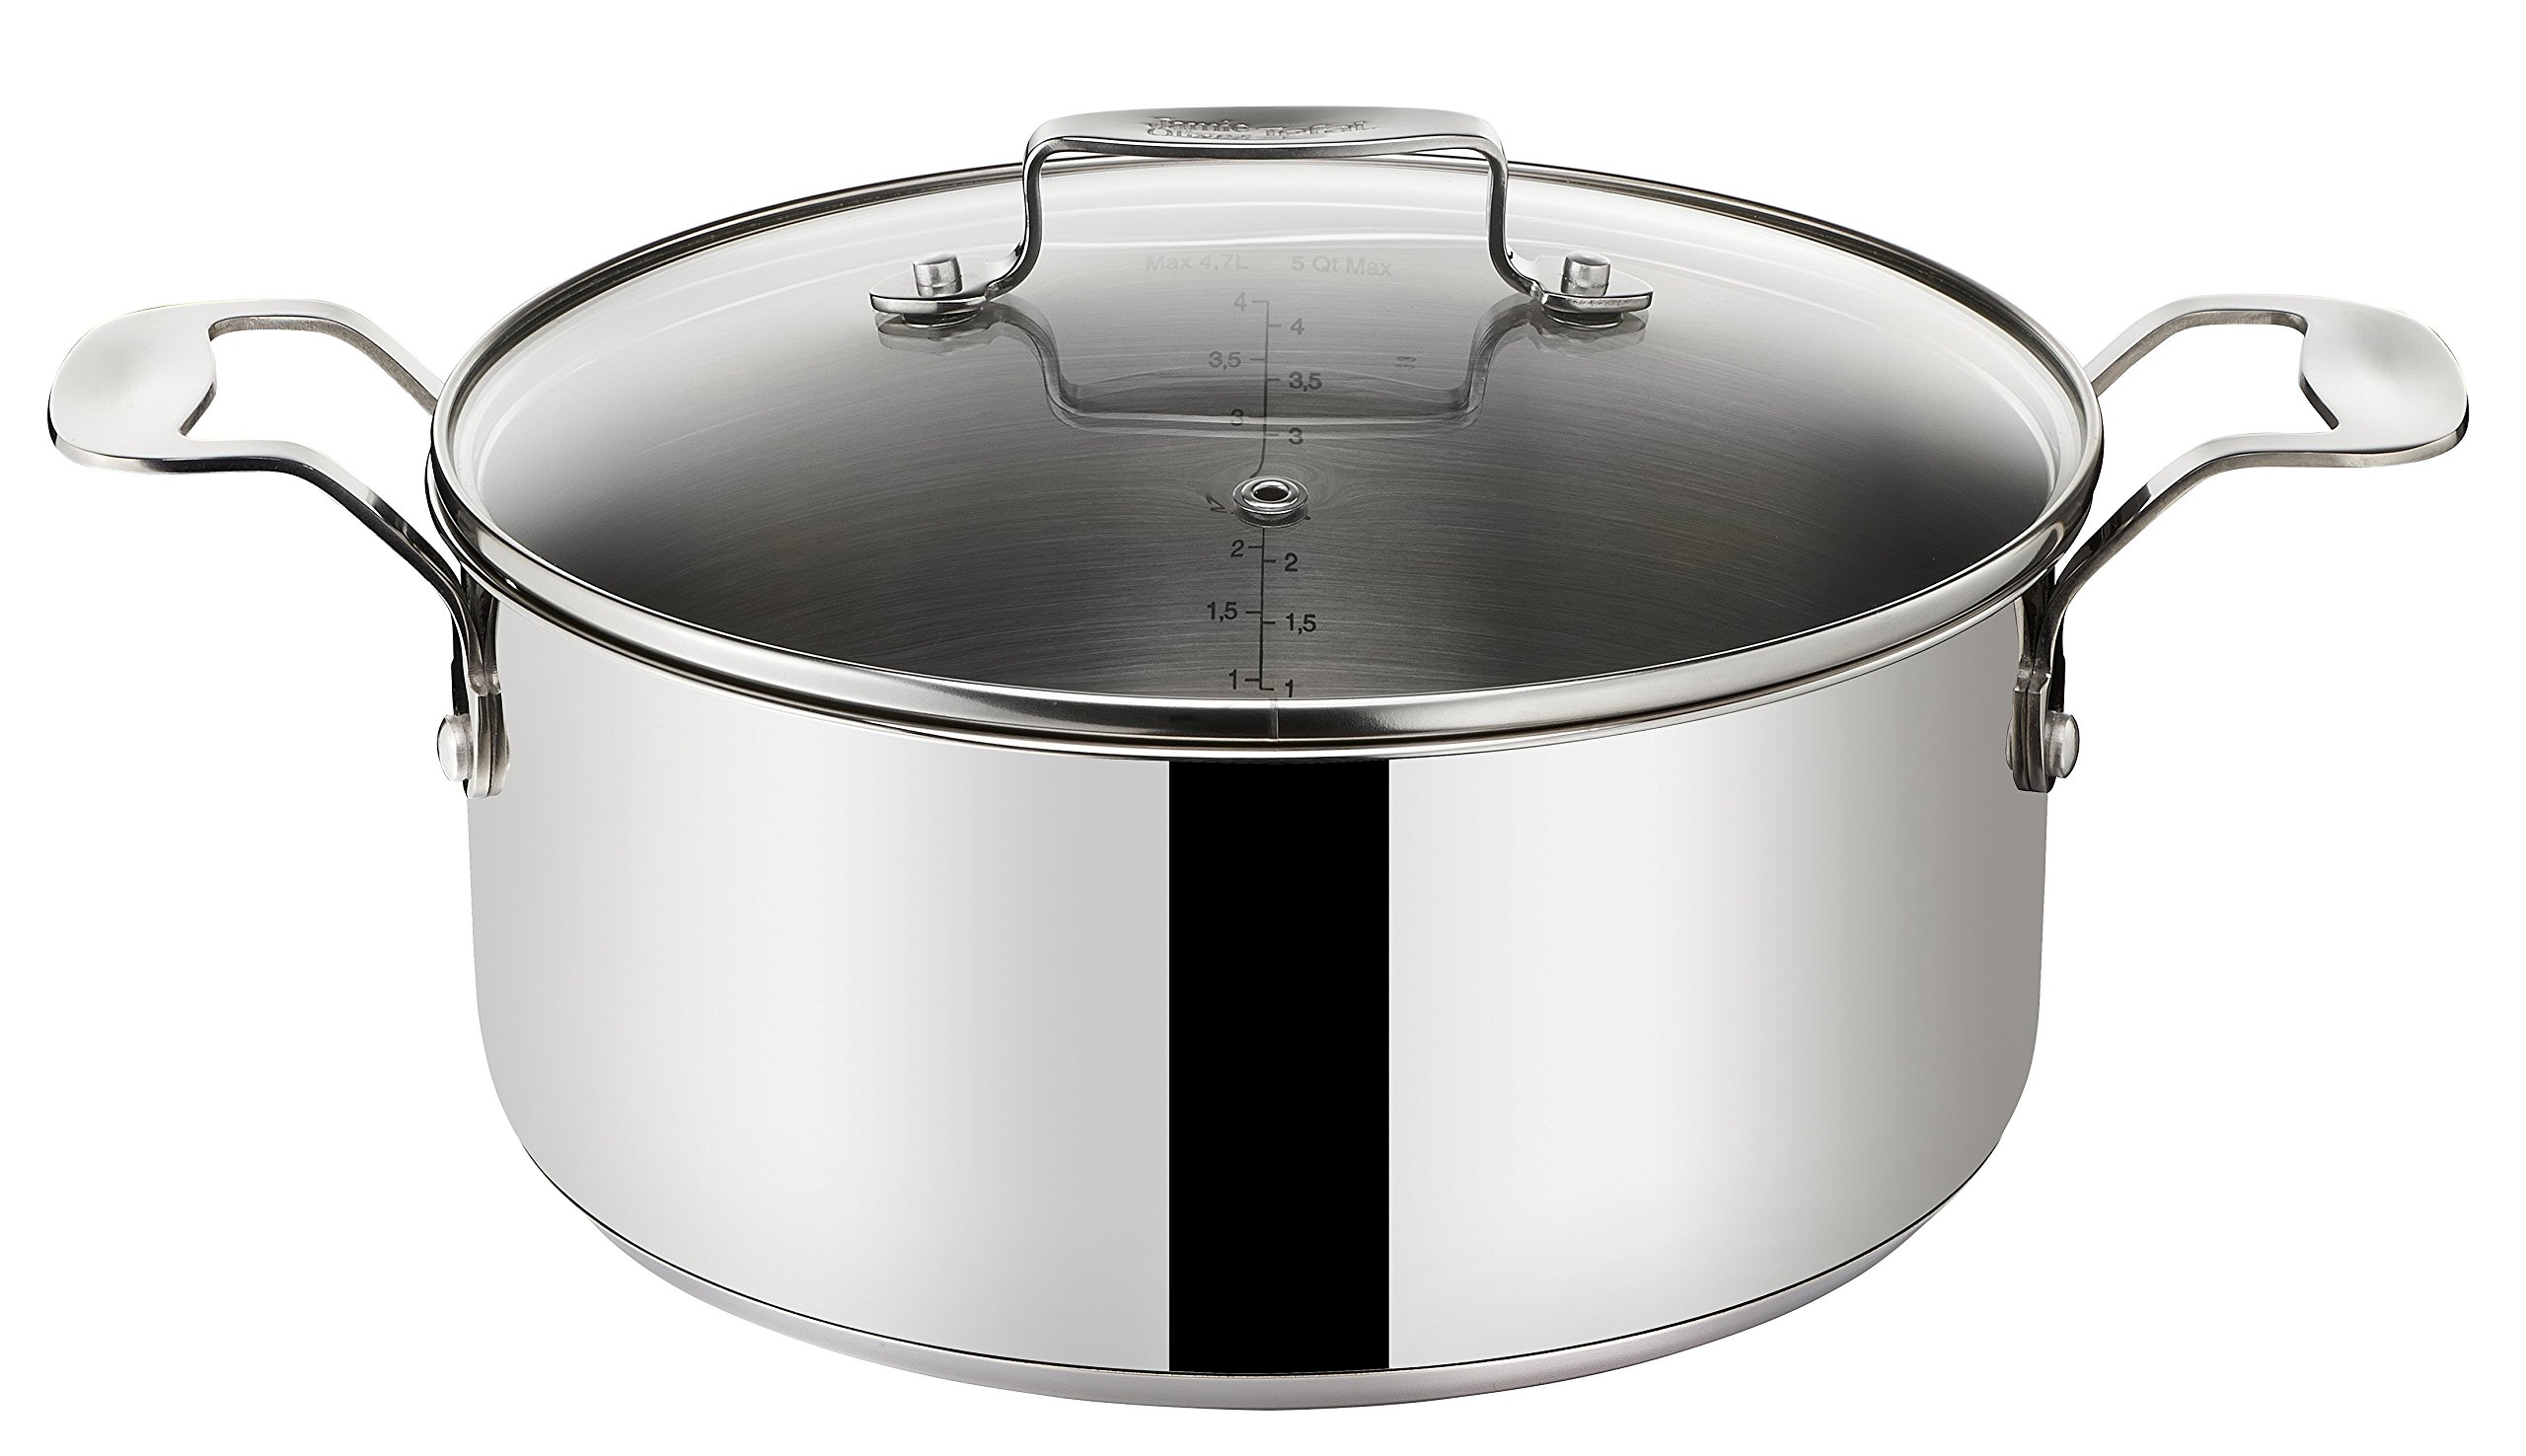 tefal jamie oliver stainless steel casserole pot with glass lid diameter 20cm ebay. Black Bedroom Furniture Sets. Home Design Ideas